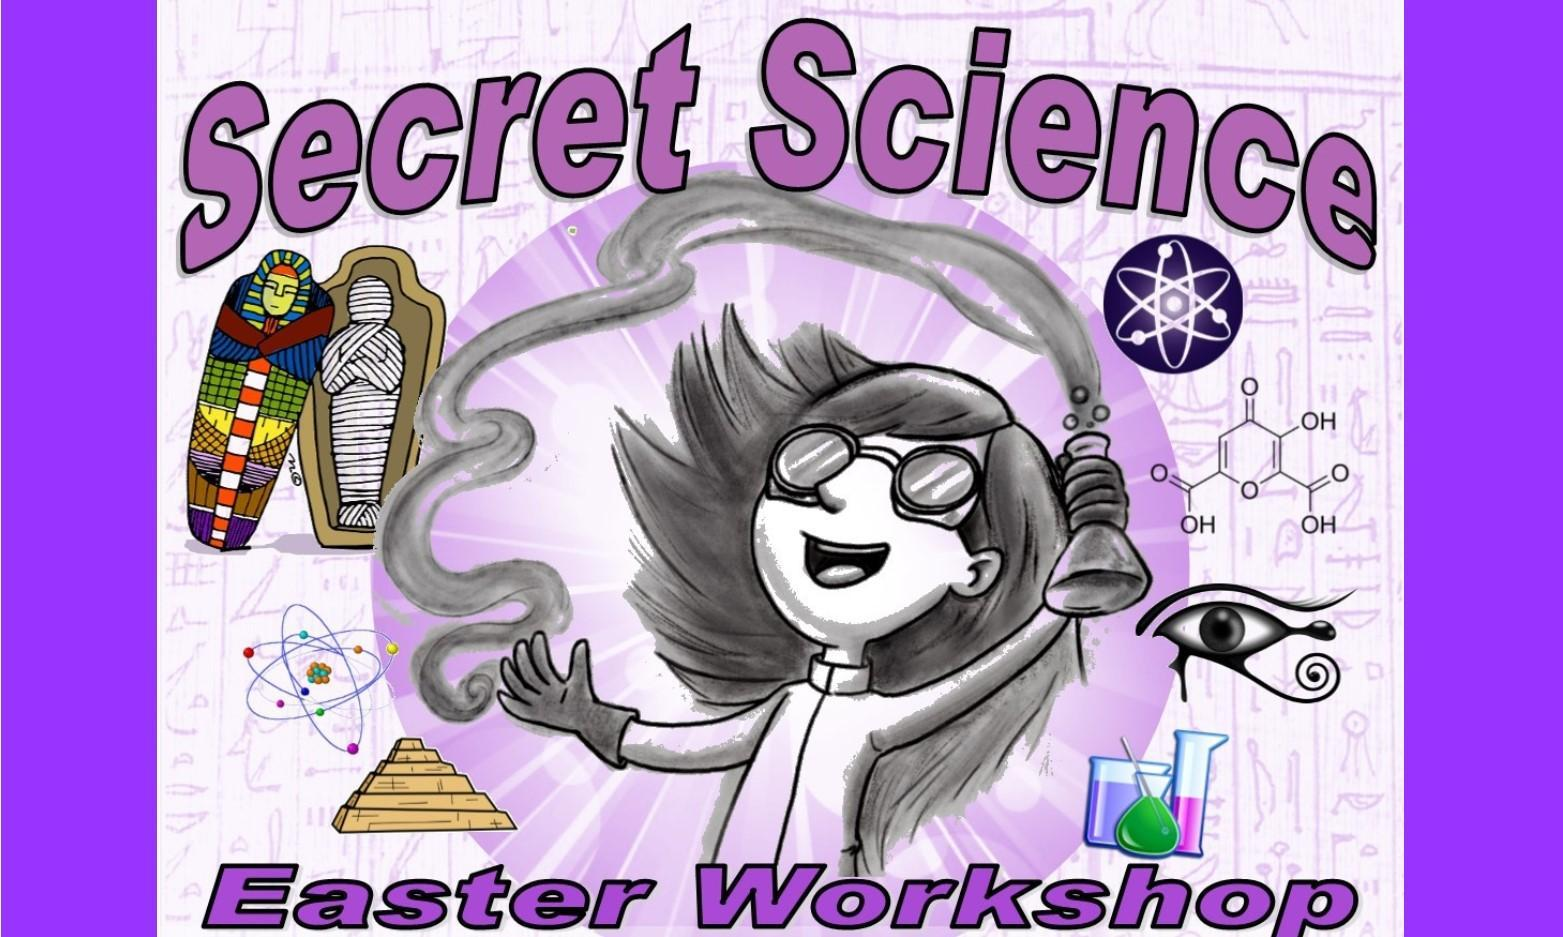 Secret Science Workshop